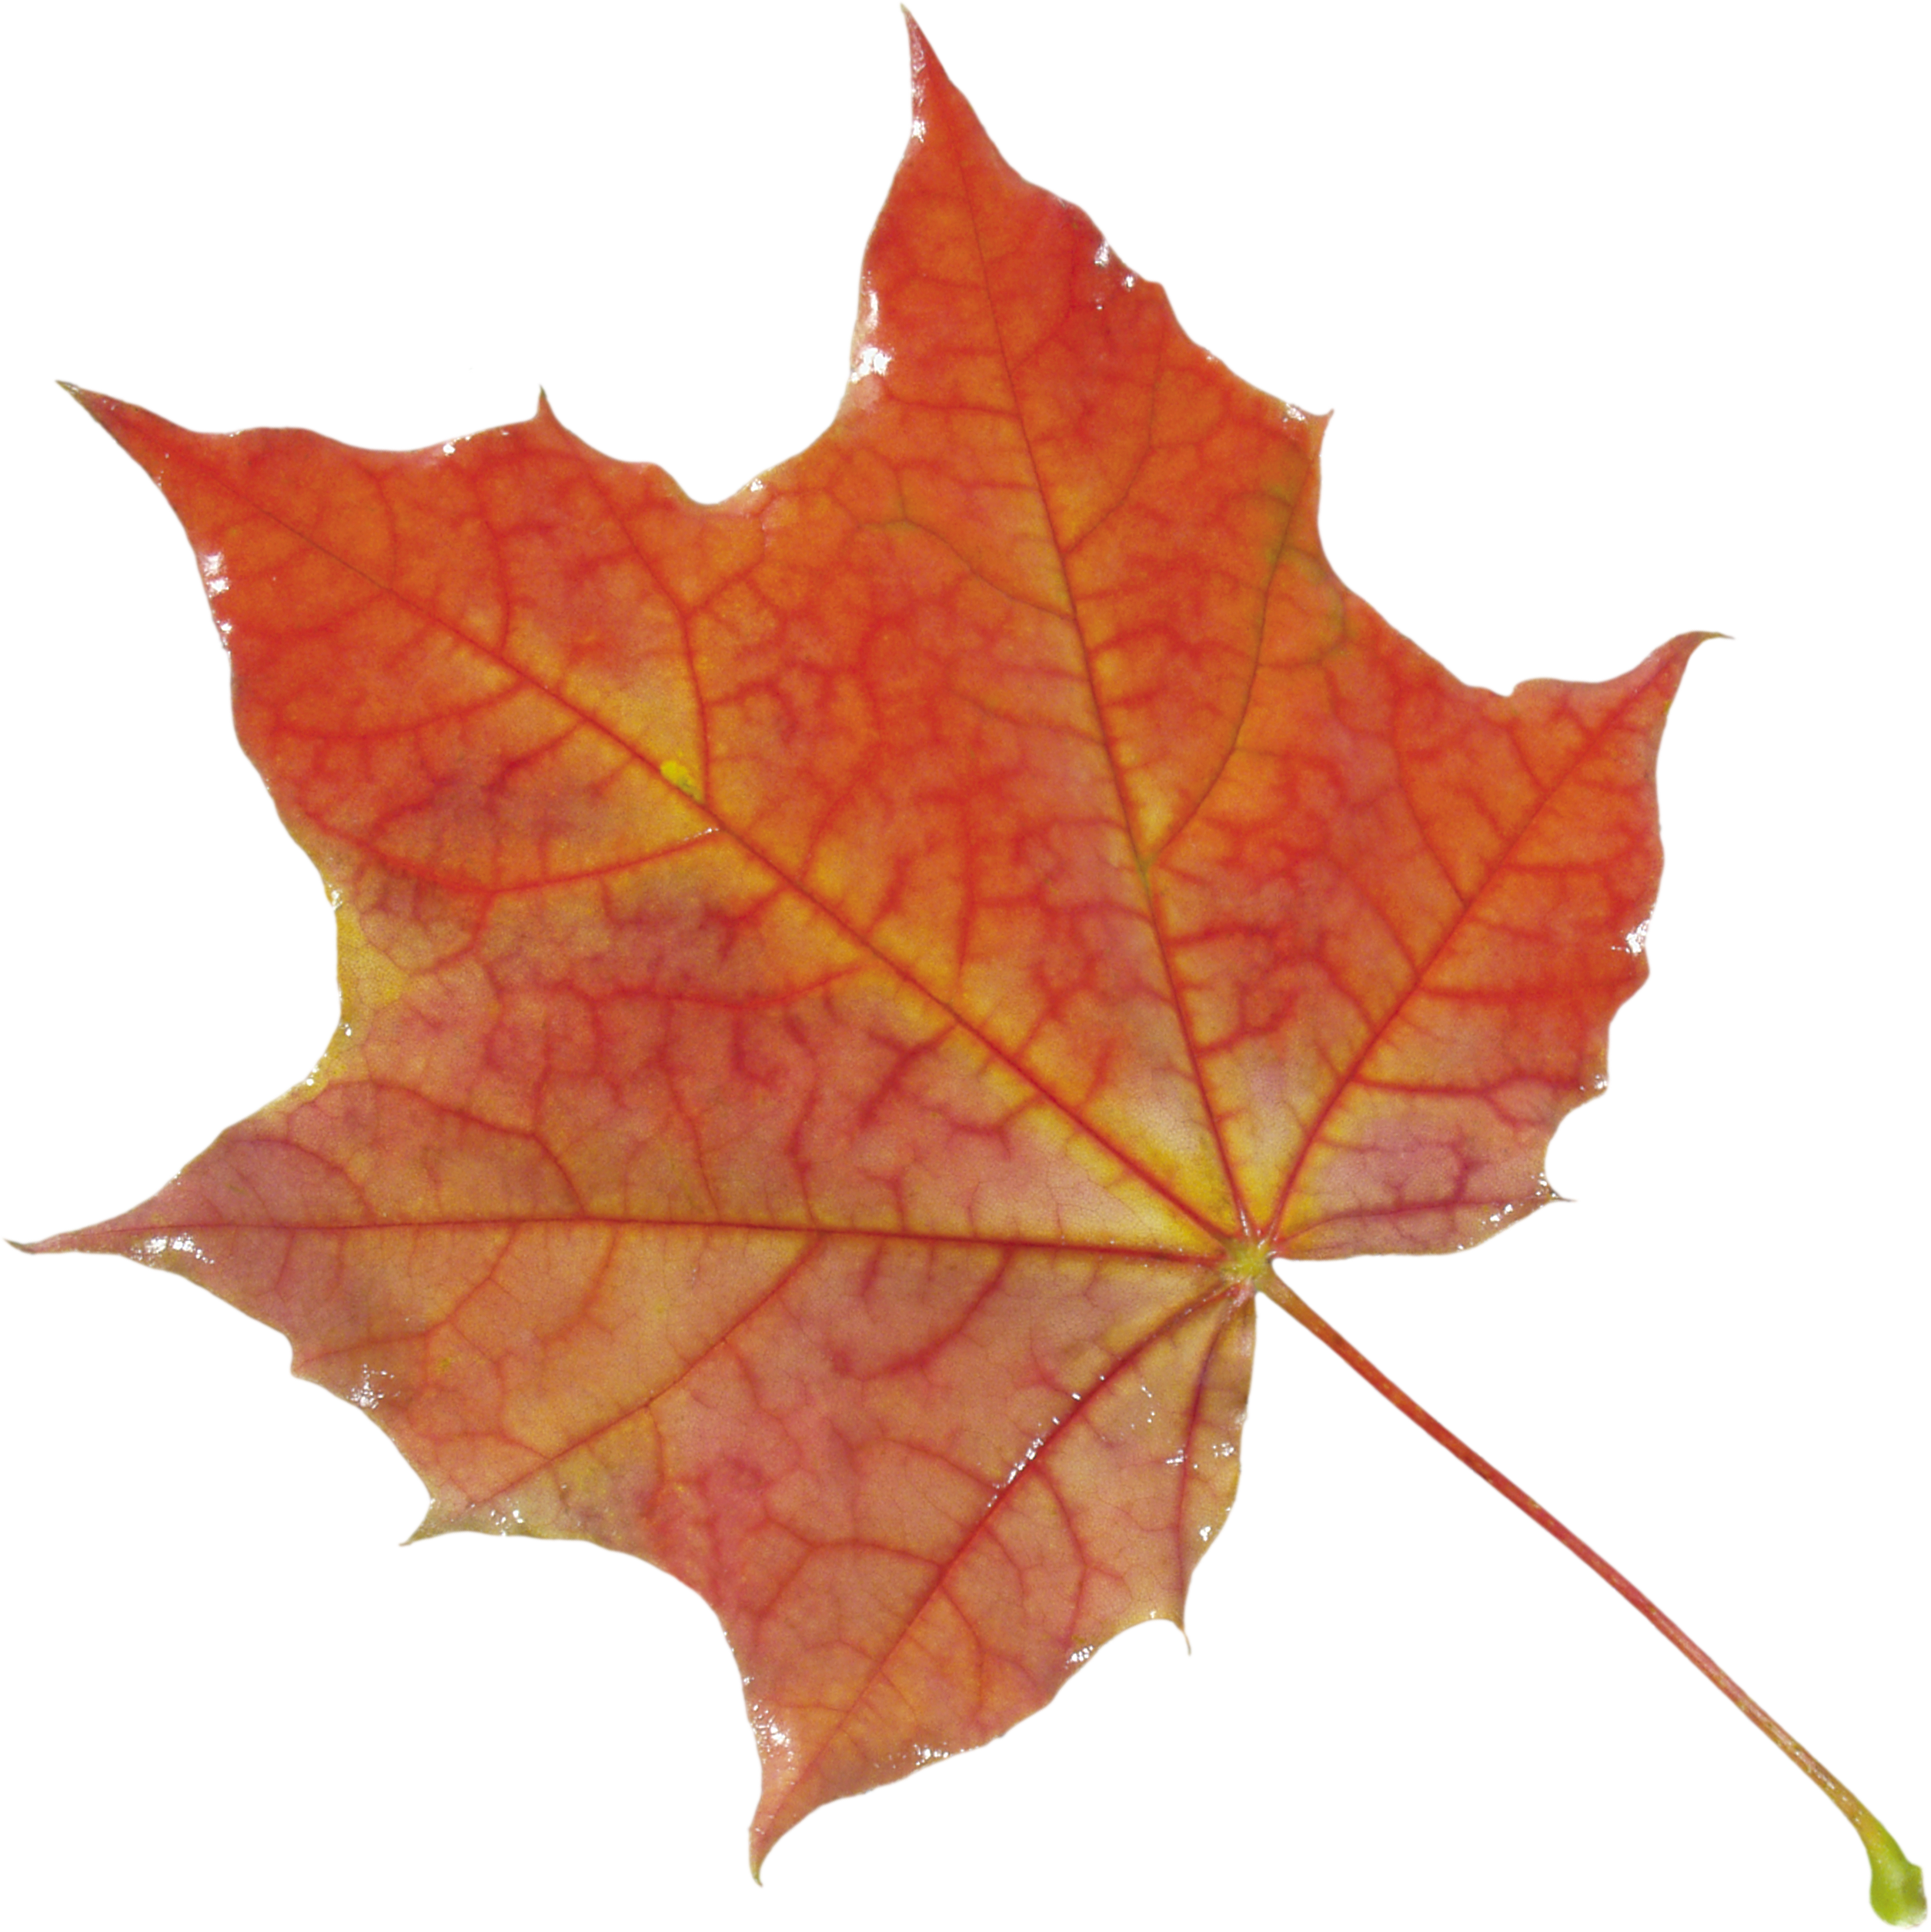 Autumn leaf, free PNGs - Autumn Leaves HD PNG